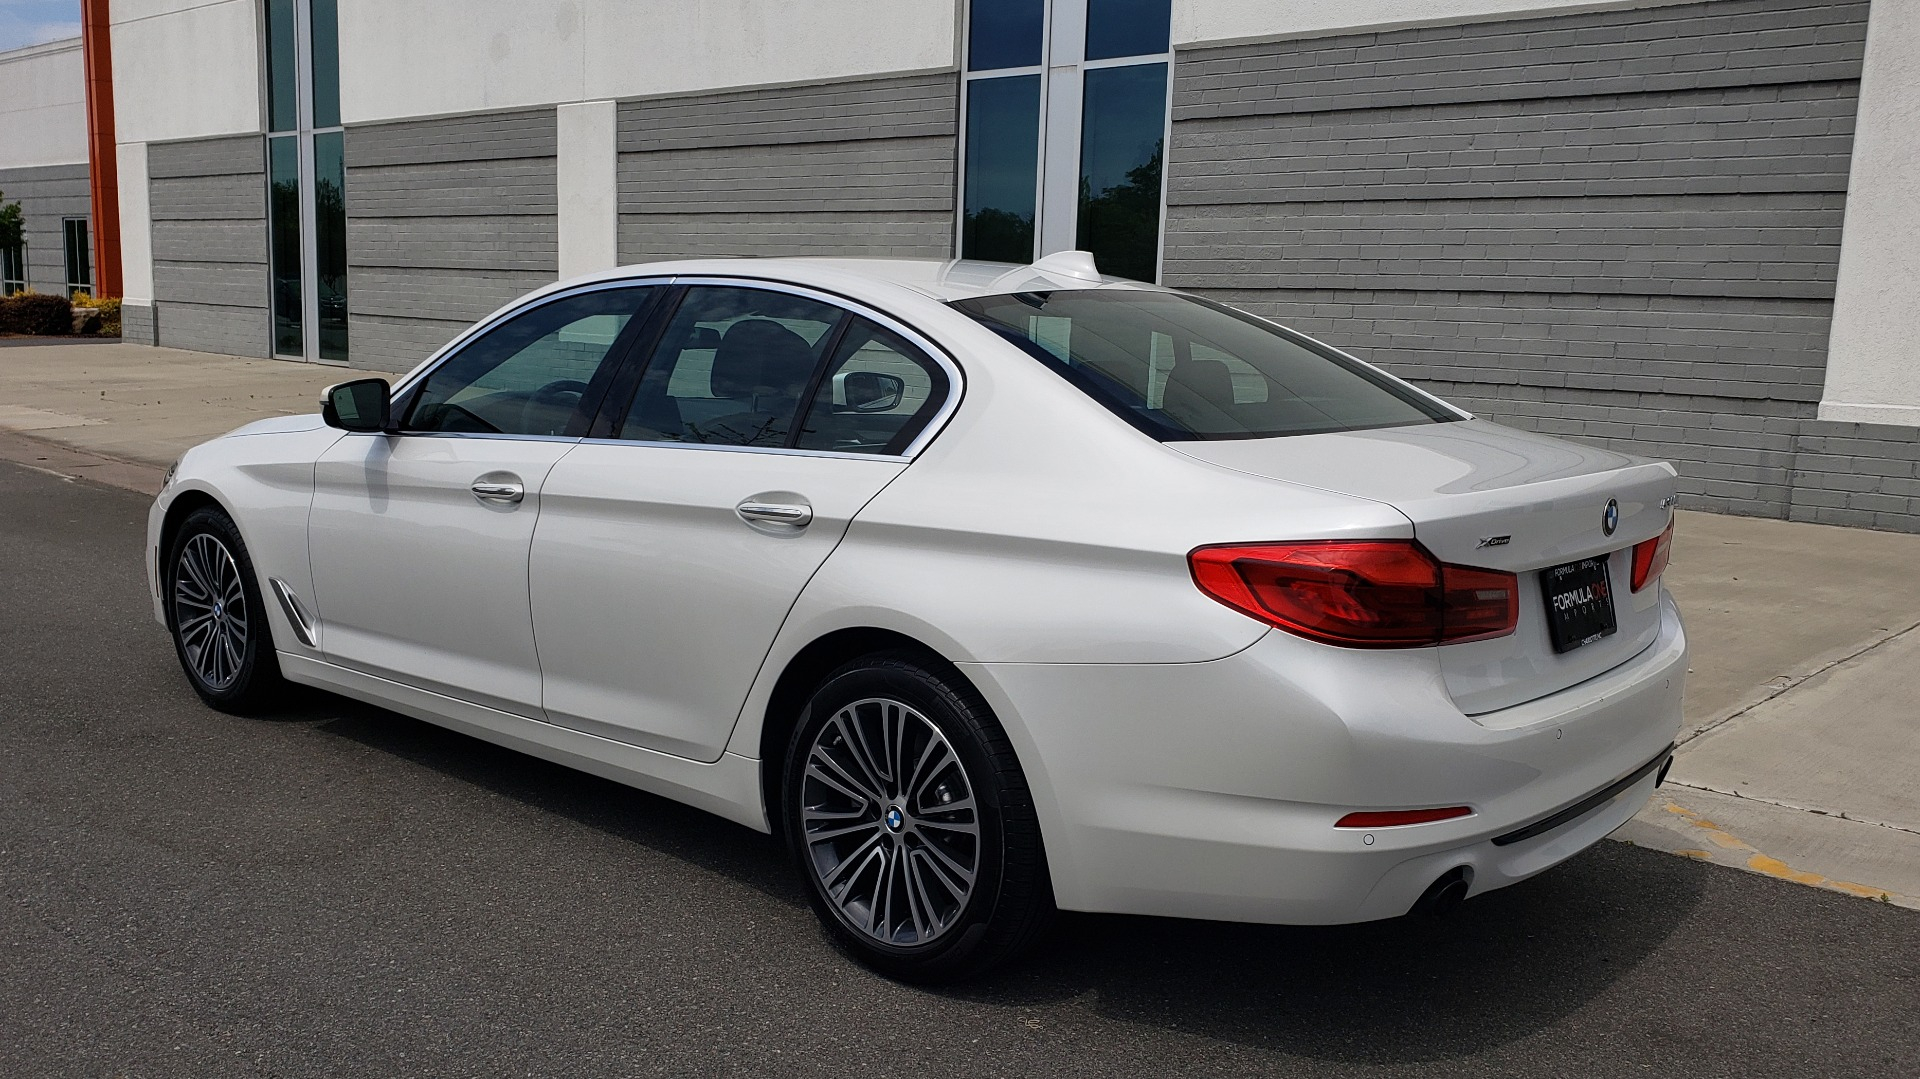 Used 2018 BMW 5 SERIES 530I XDRIVE PREMIUM / NAV / DRVR ASST / PARK ASST / H/K SND for sale $32,795 at Formula Imports in Charlotte NC 28227 5